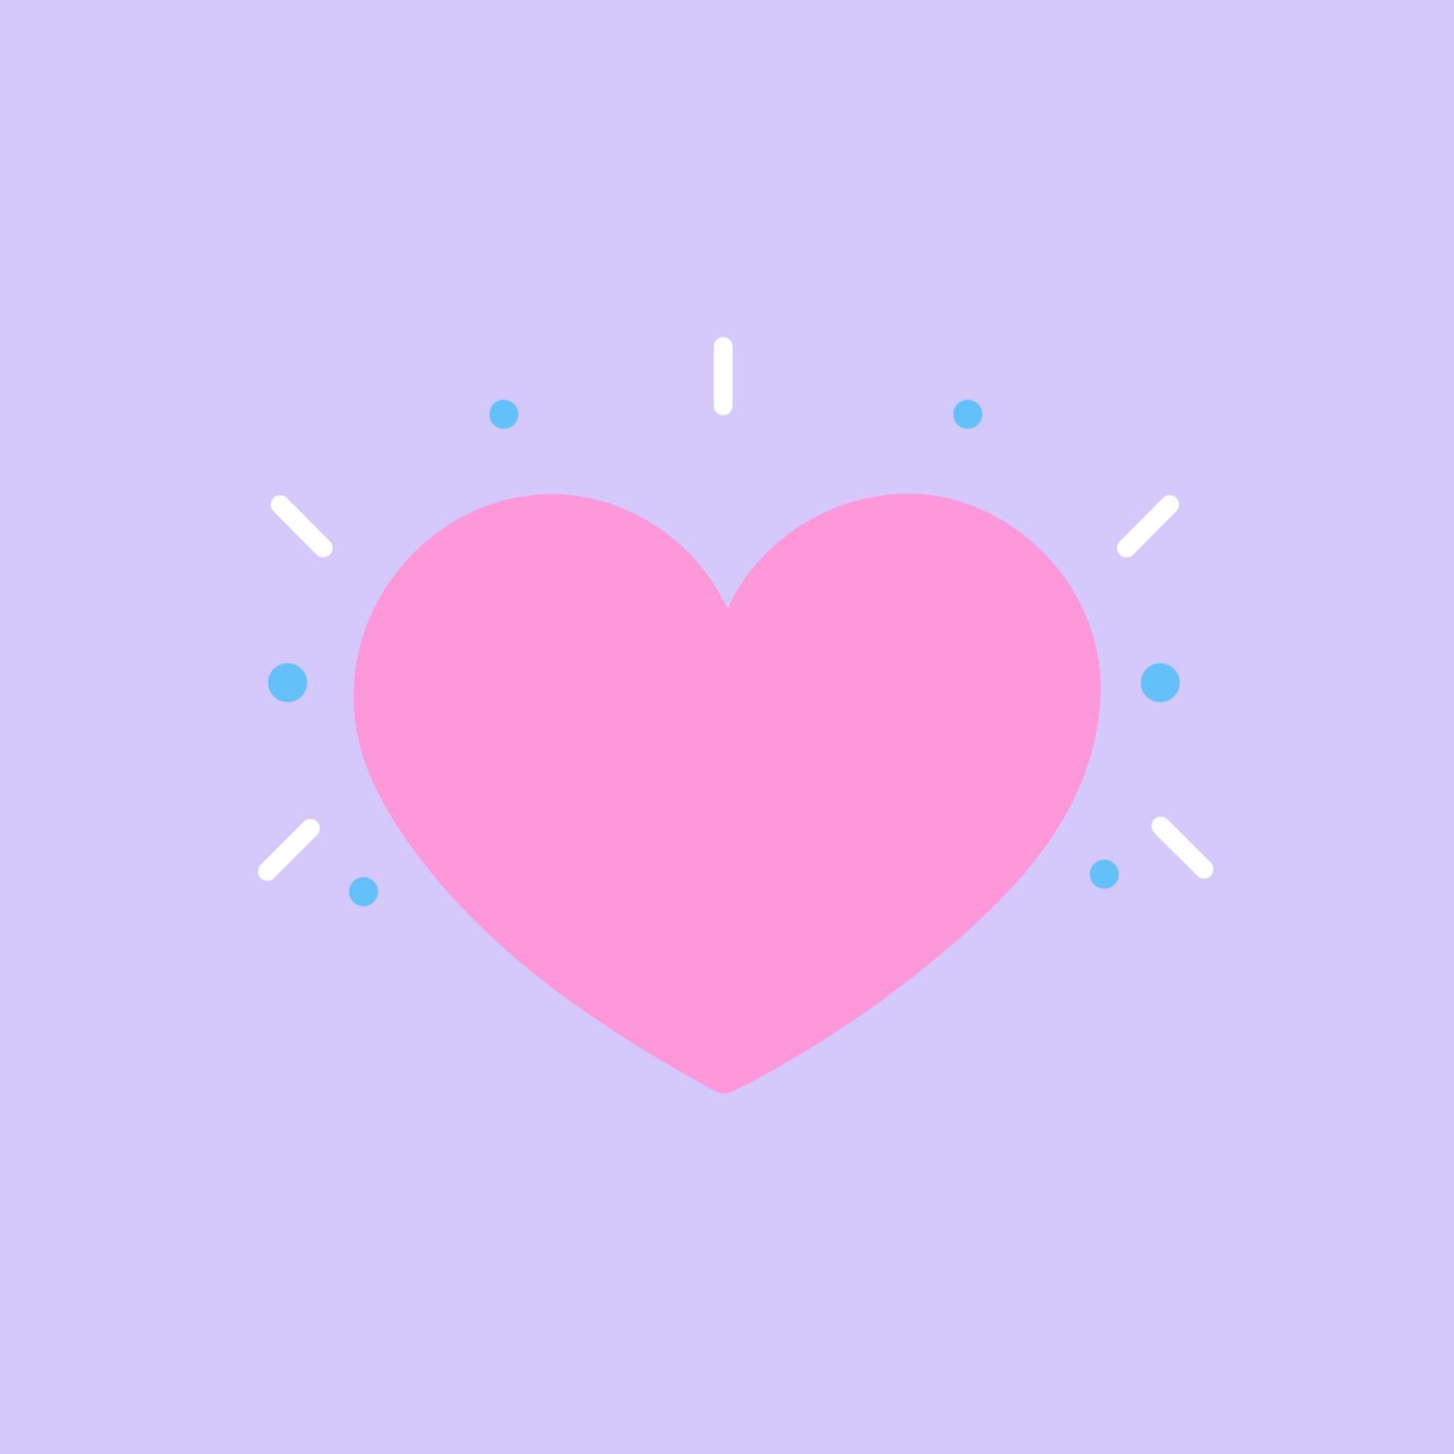 love SkilLs - As you collaborate, there will be many chances for you to love your connection's work and endorse their skills.